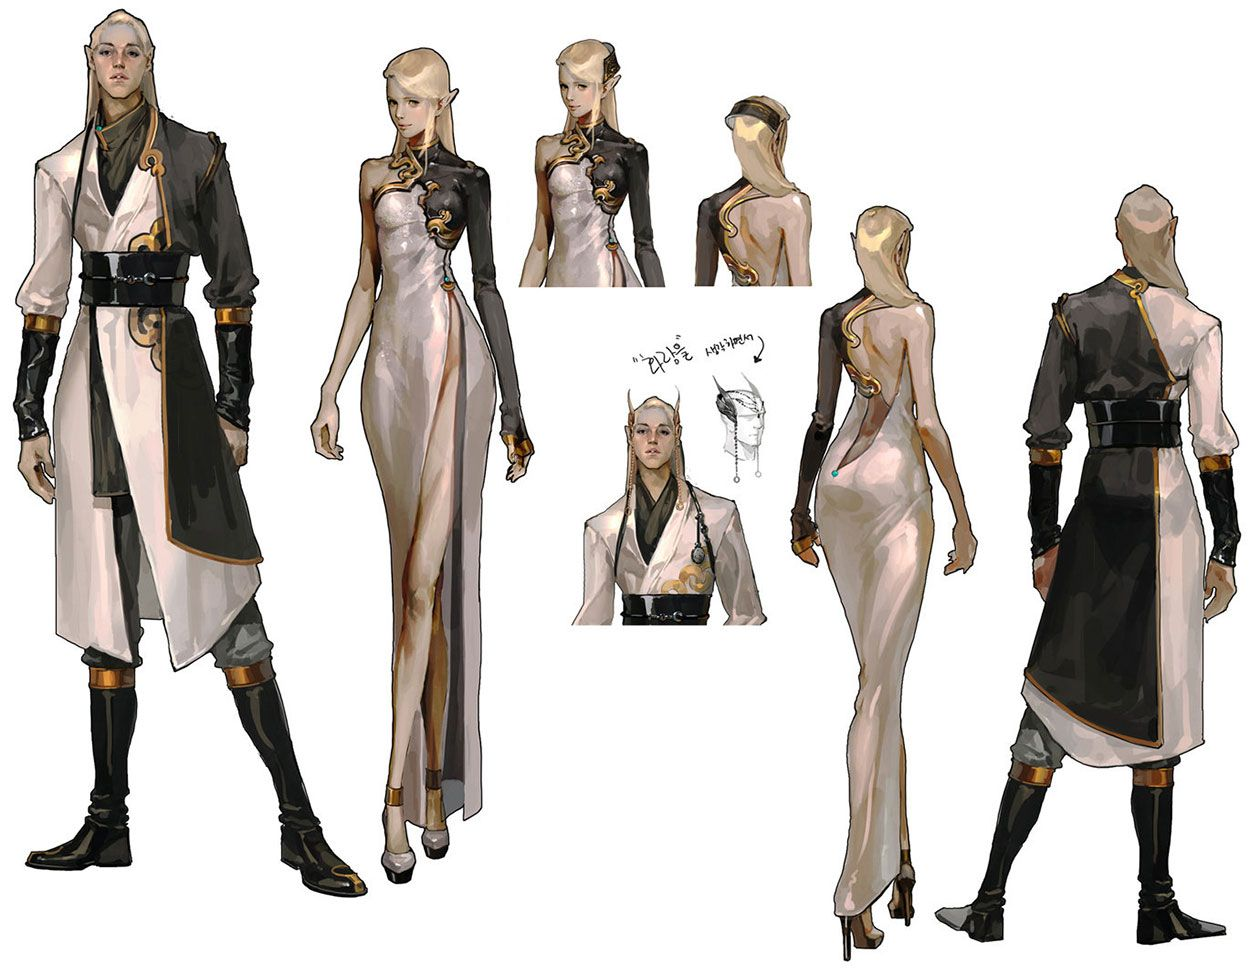 Awesome Clothing Designs From Mabinogi II: Arena